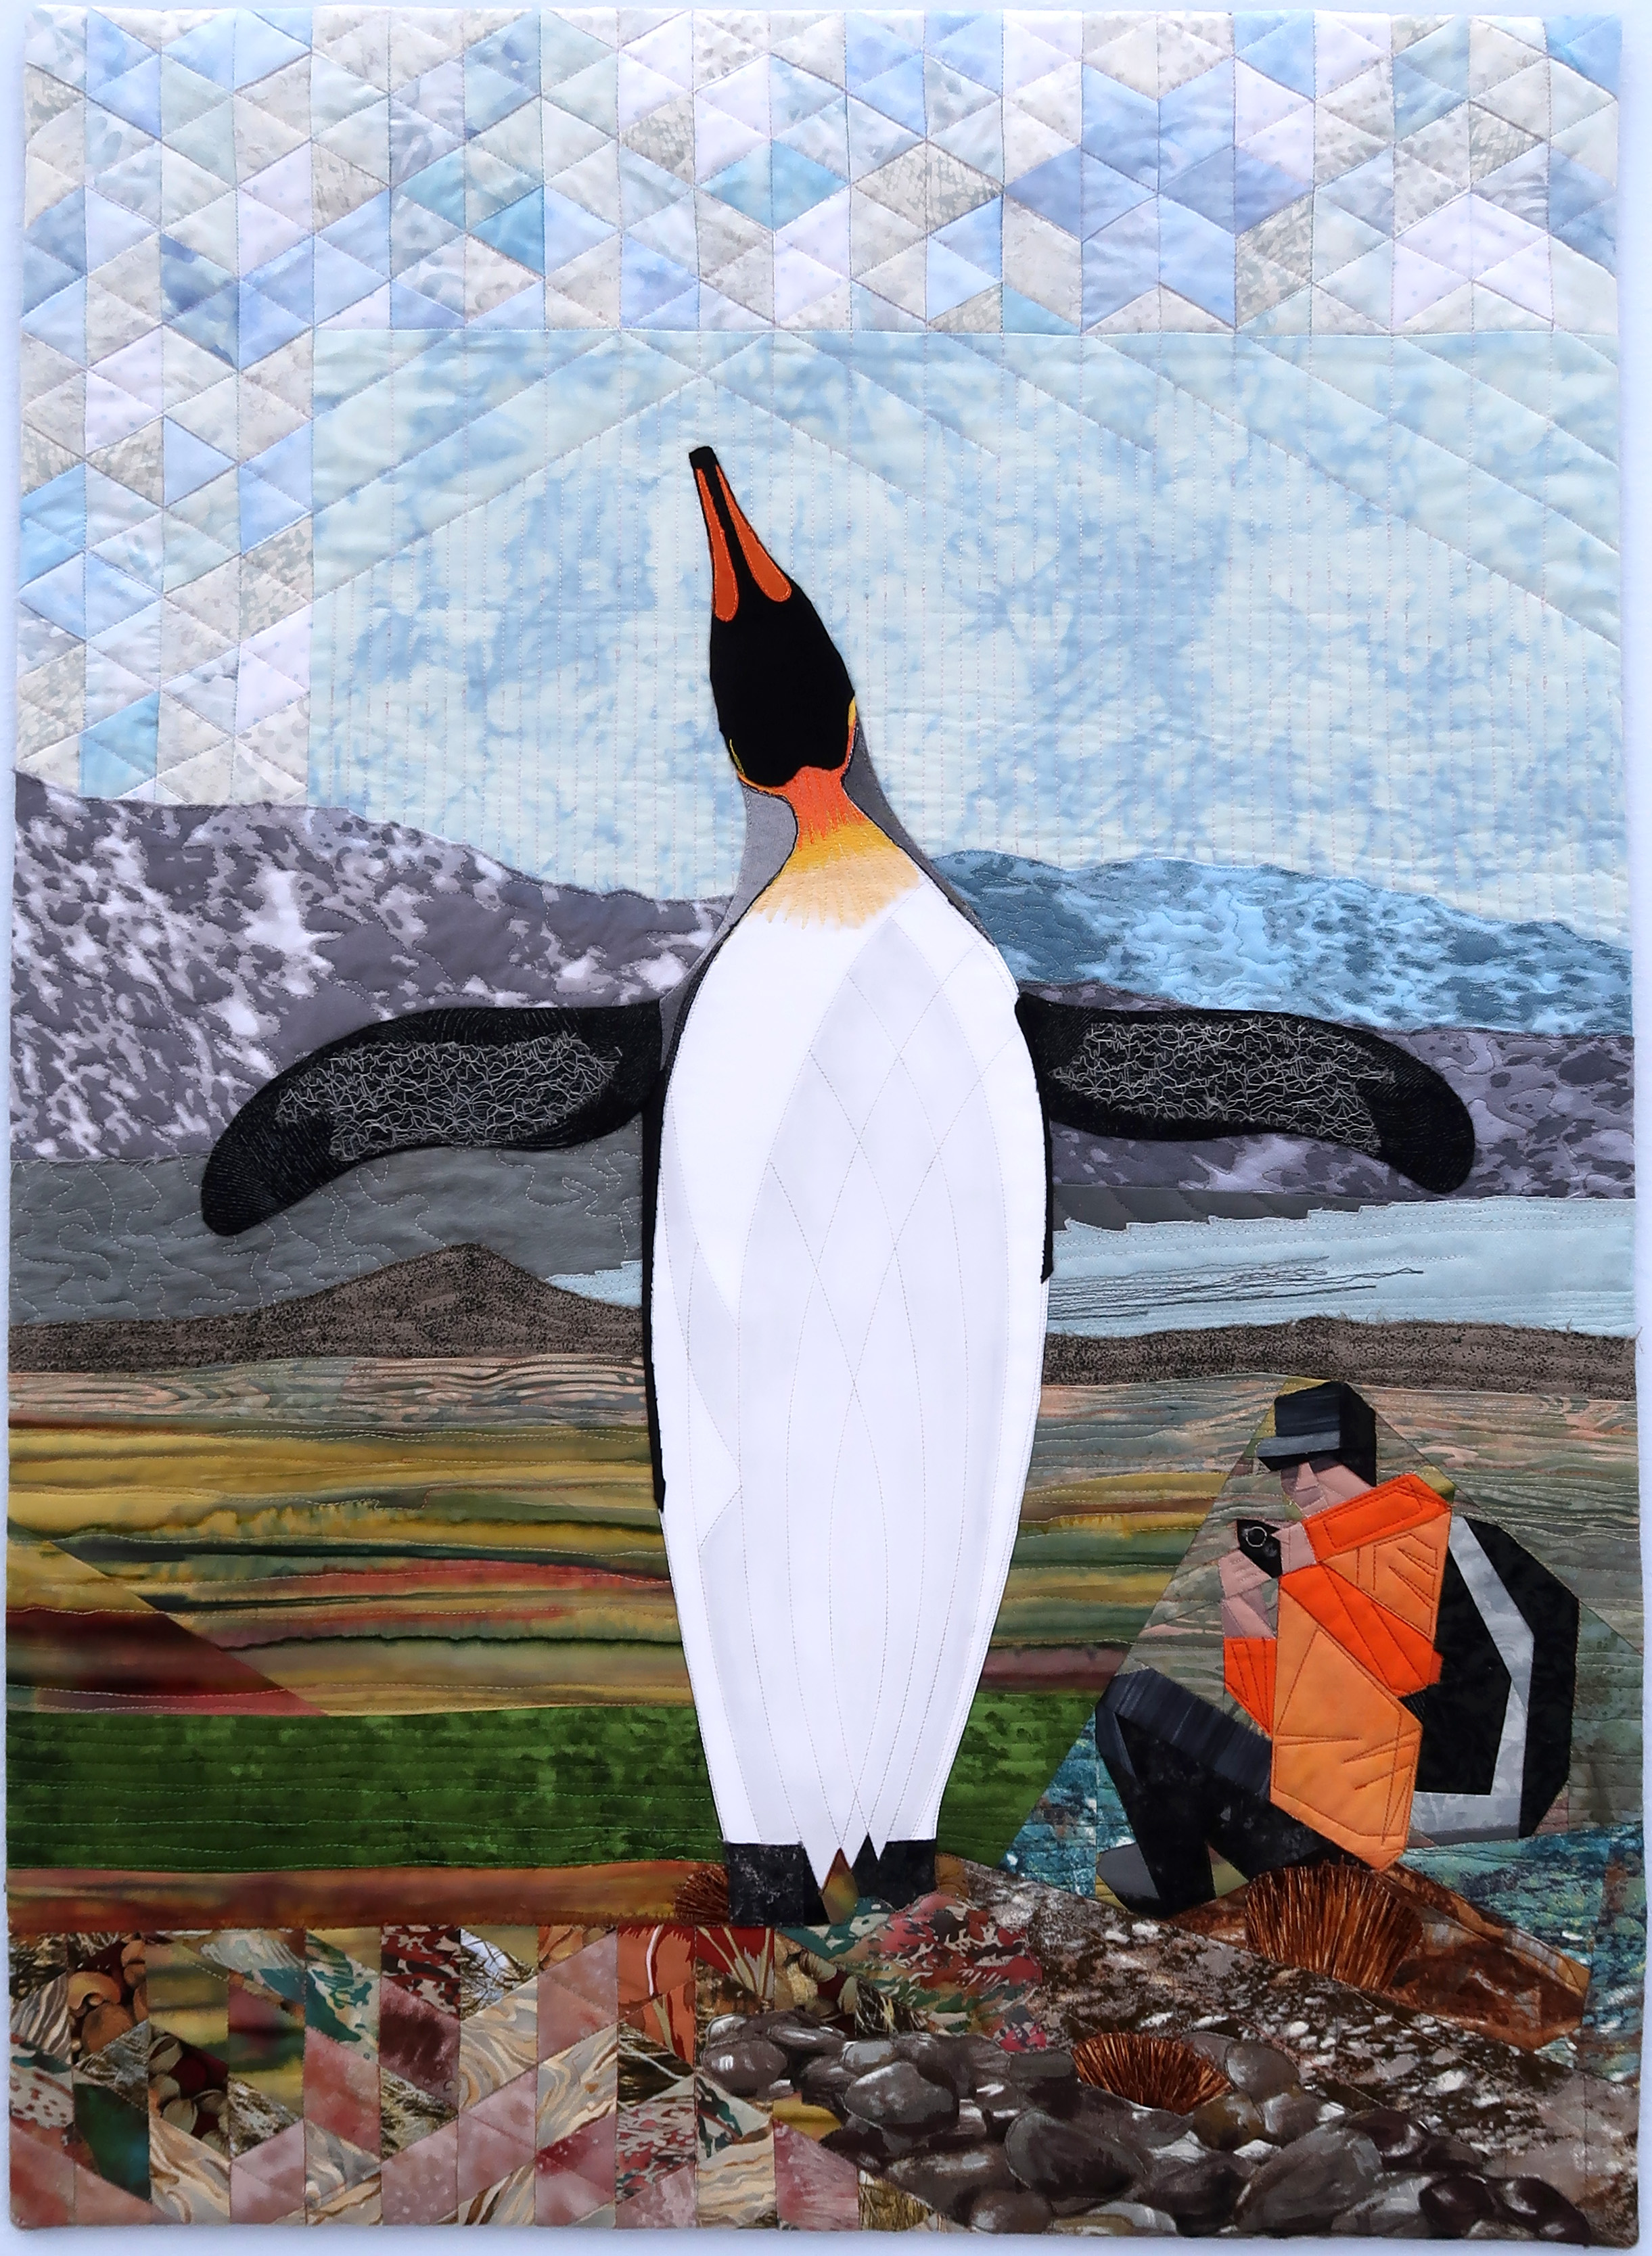 """Antarctic Ululation - 23"""" x 32"""" - Feb 2018Private Collection - Calgary, ABSometimes we're lucky enough to observe great moments in nature. In this instant, self and subject are one. Awareness that the air beneath your wings is the same air that trills in my throat. I see you - I am here!"""